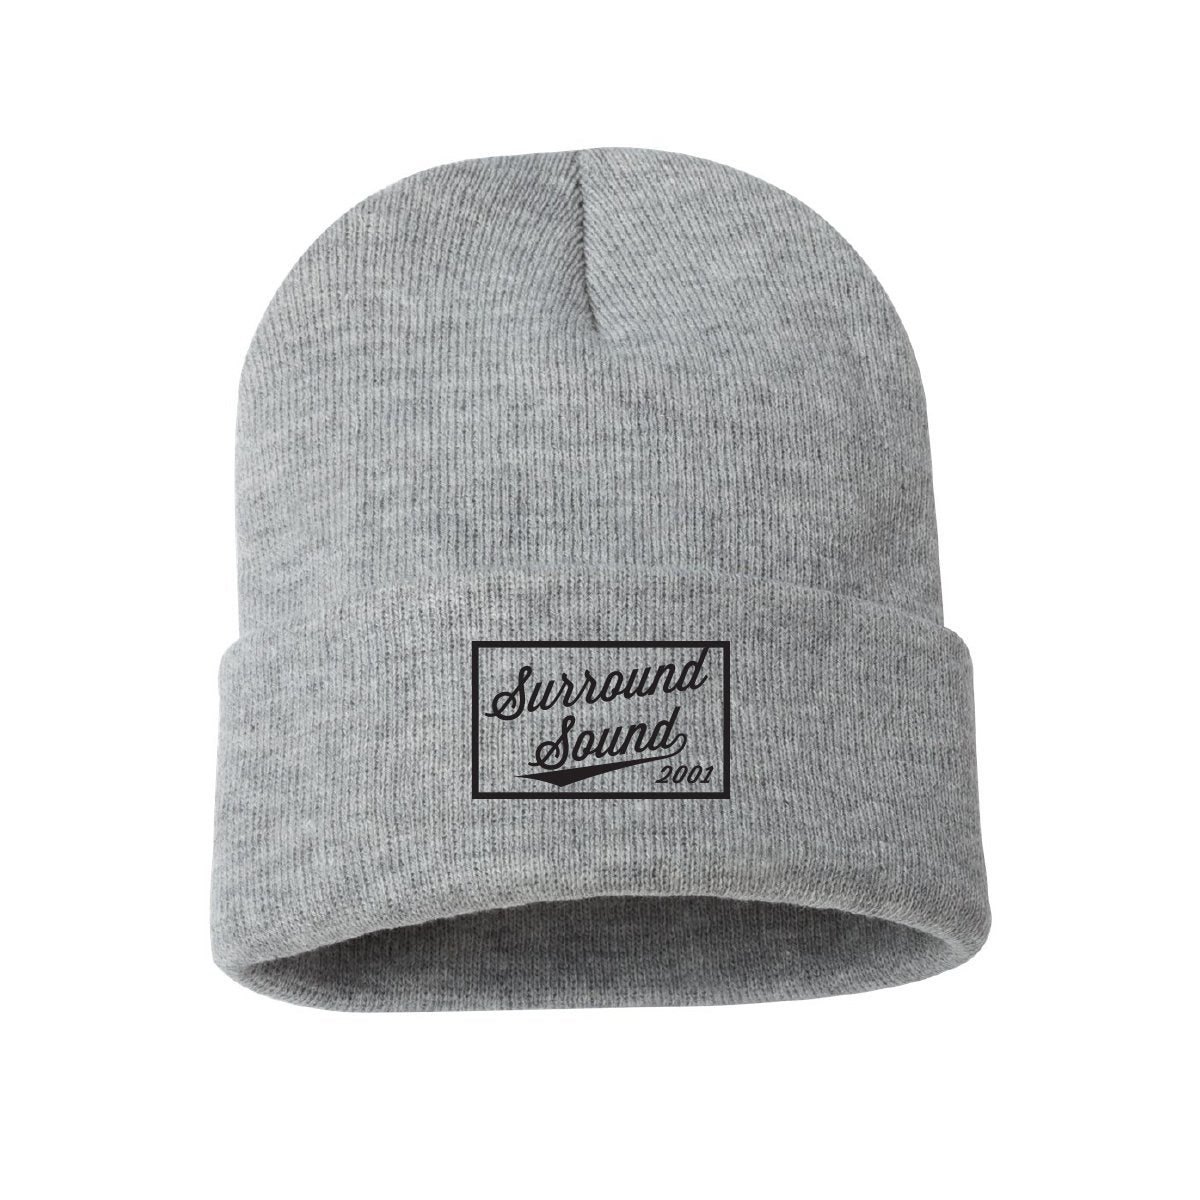 Surround Sound Classic Knit Beanie